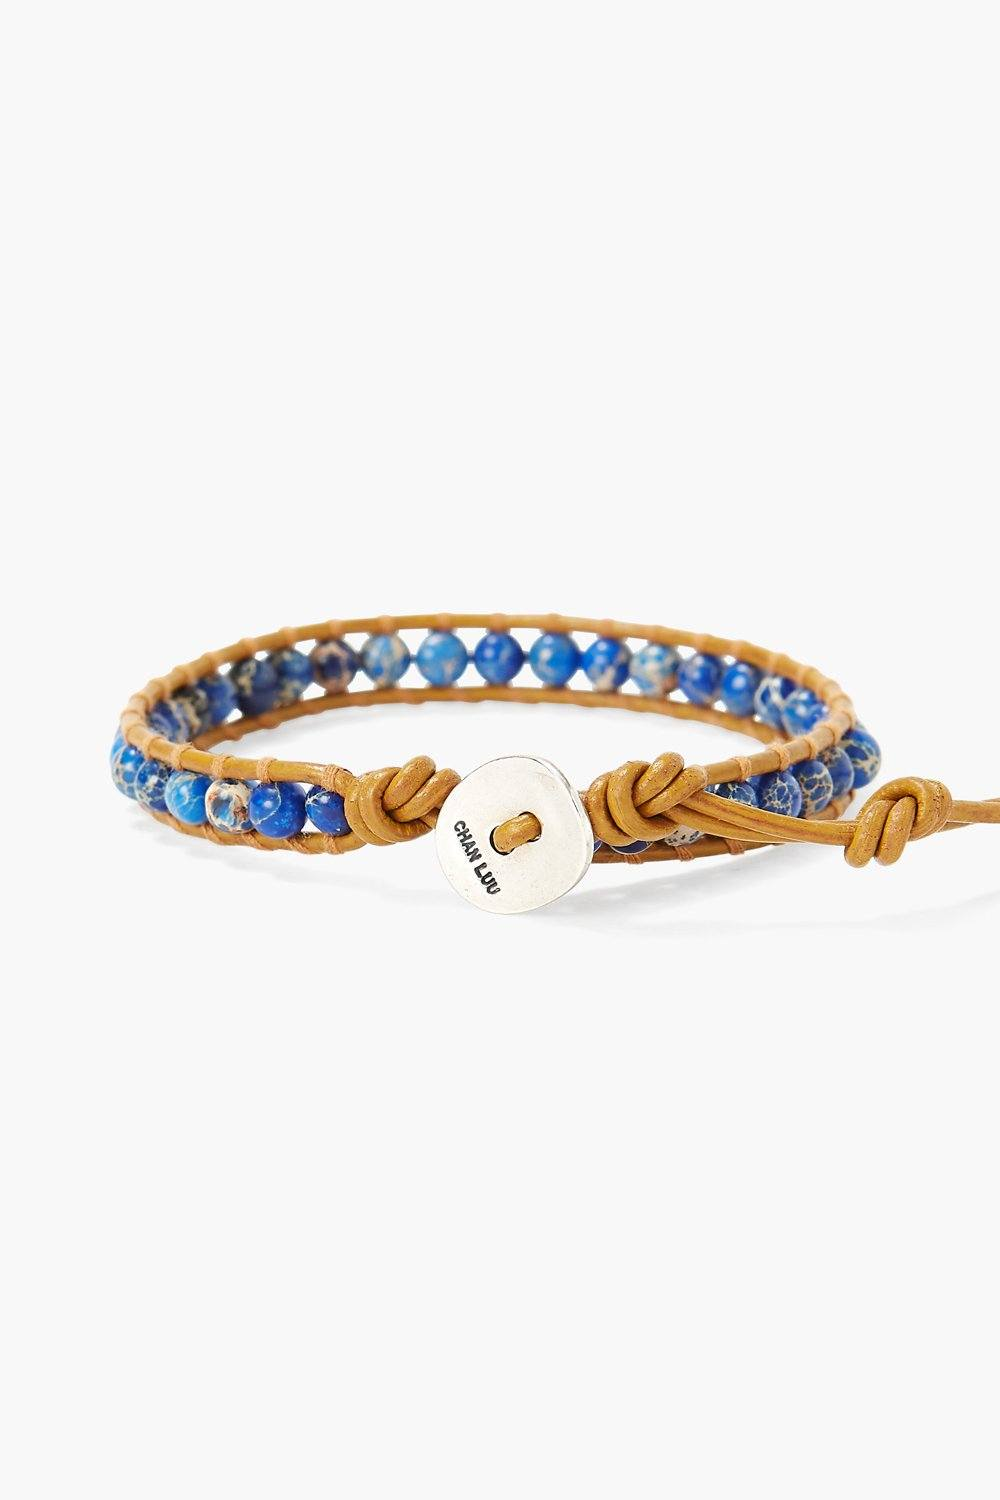 Blue Impression Jasper Single Wrap Bracelet